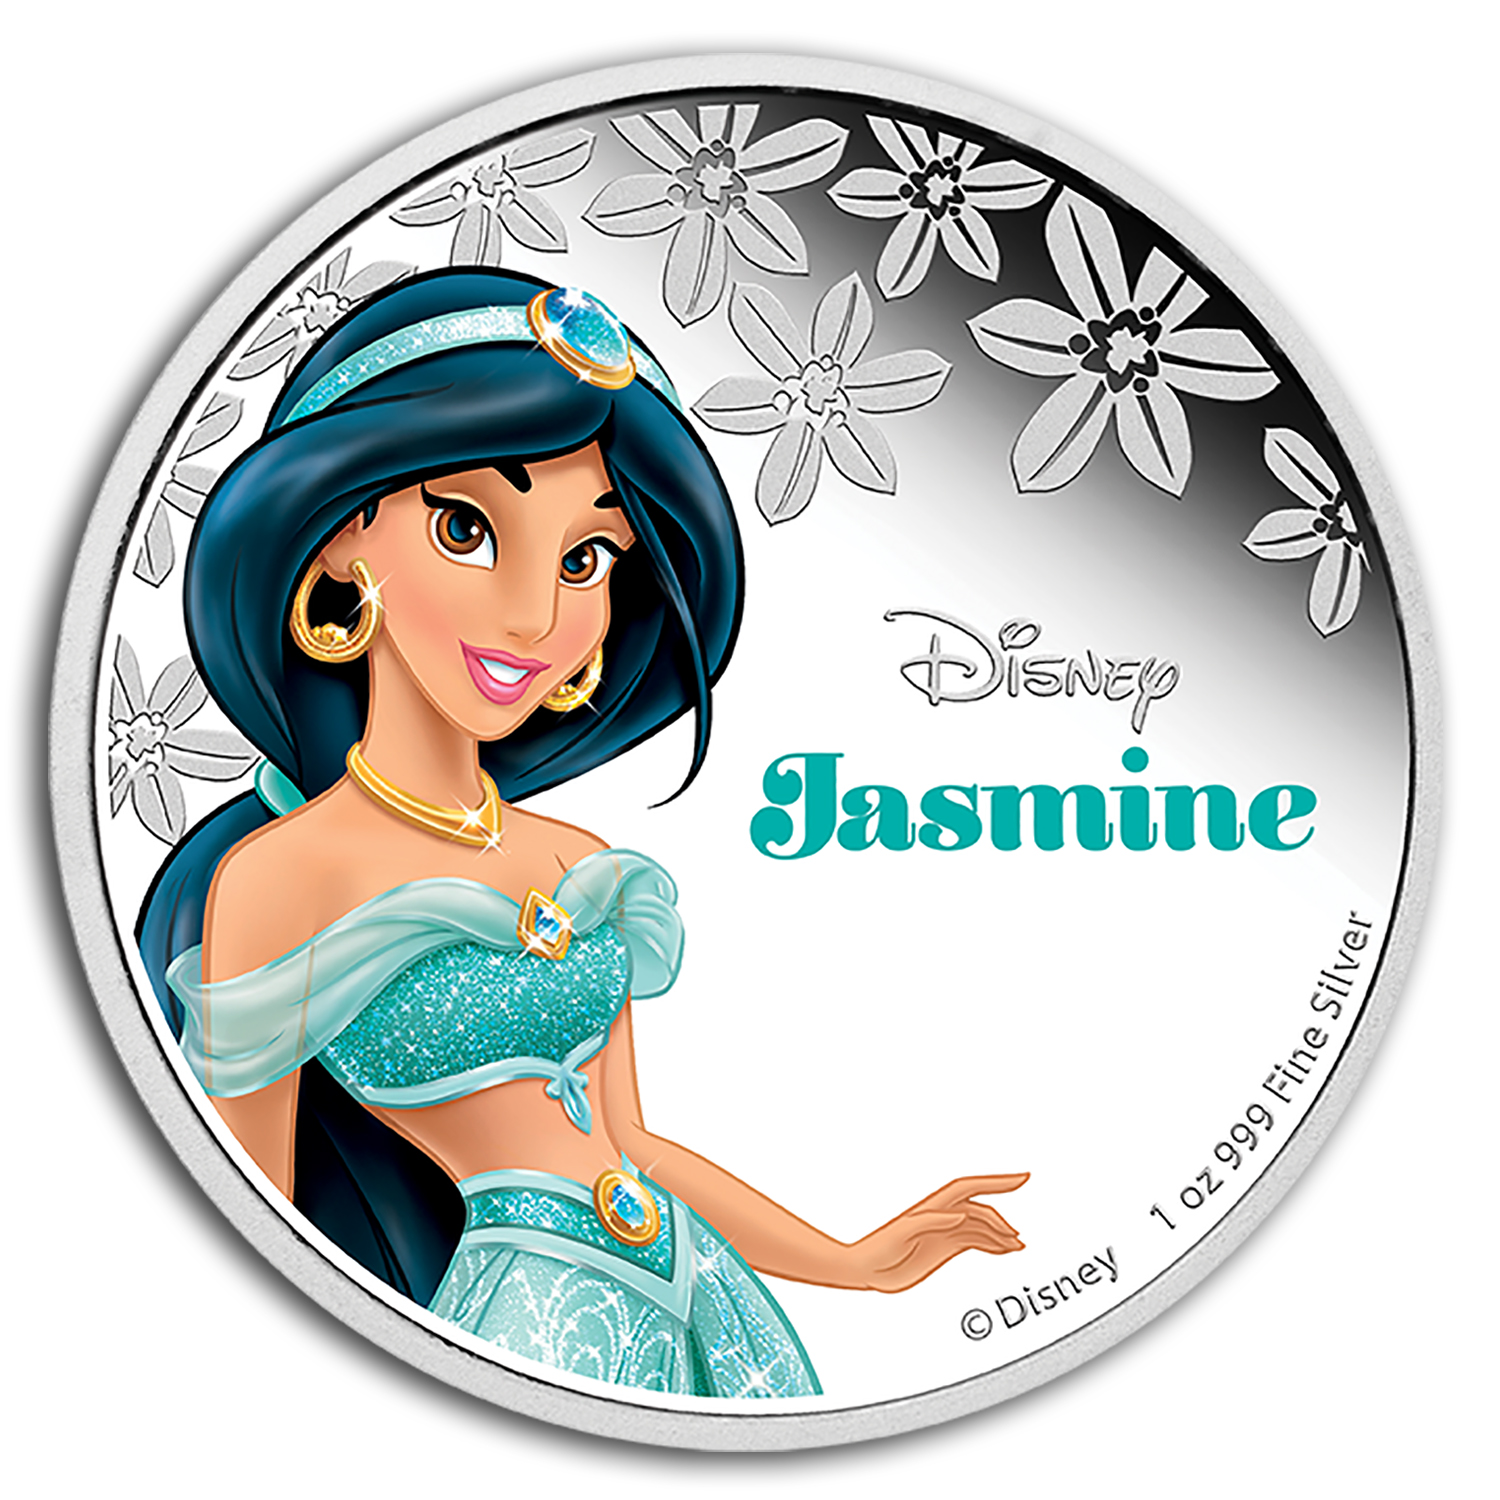 2015 Niue 1 oz Silver $2 Disney Princess Jasmine